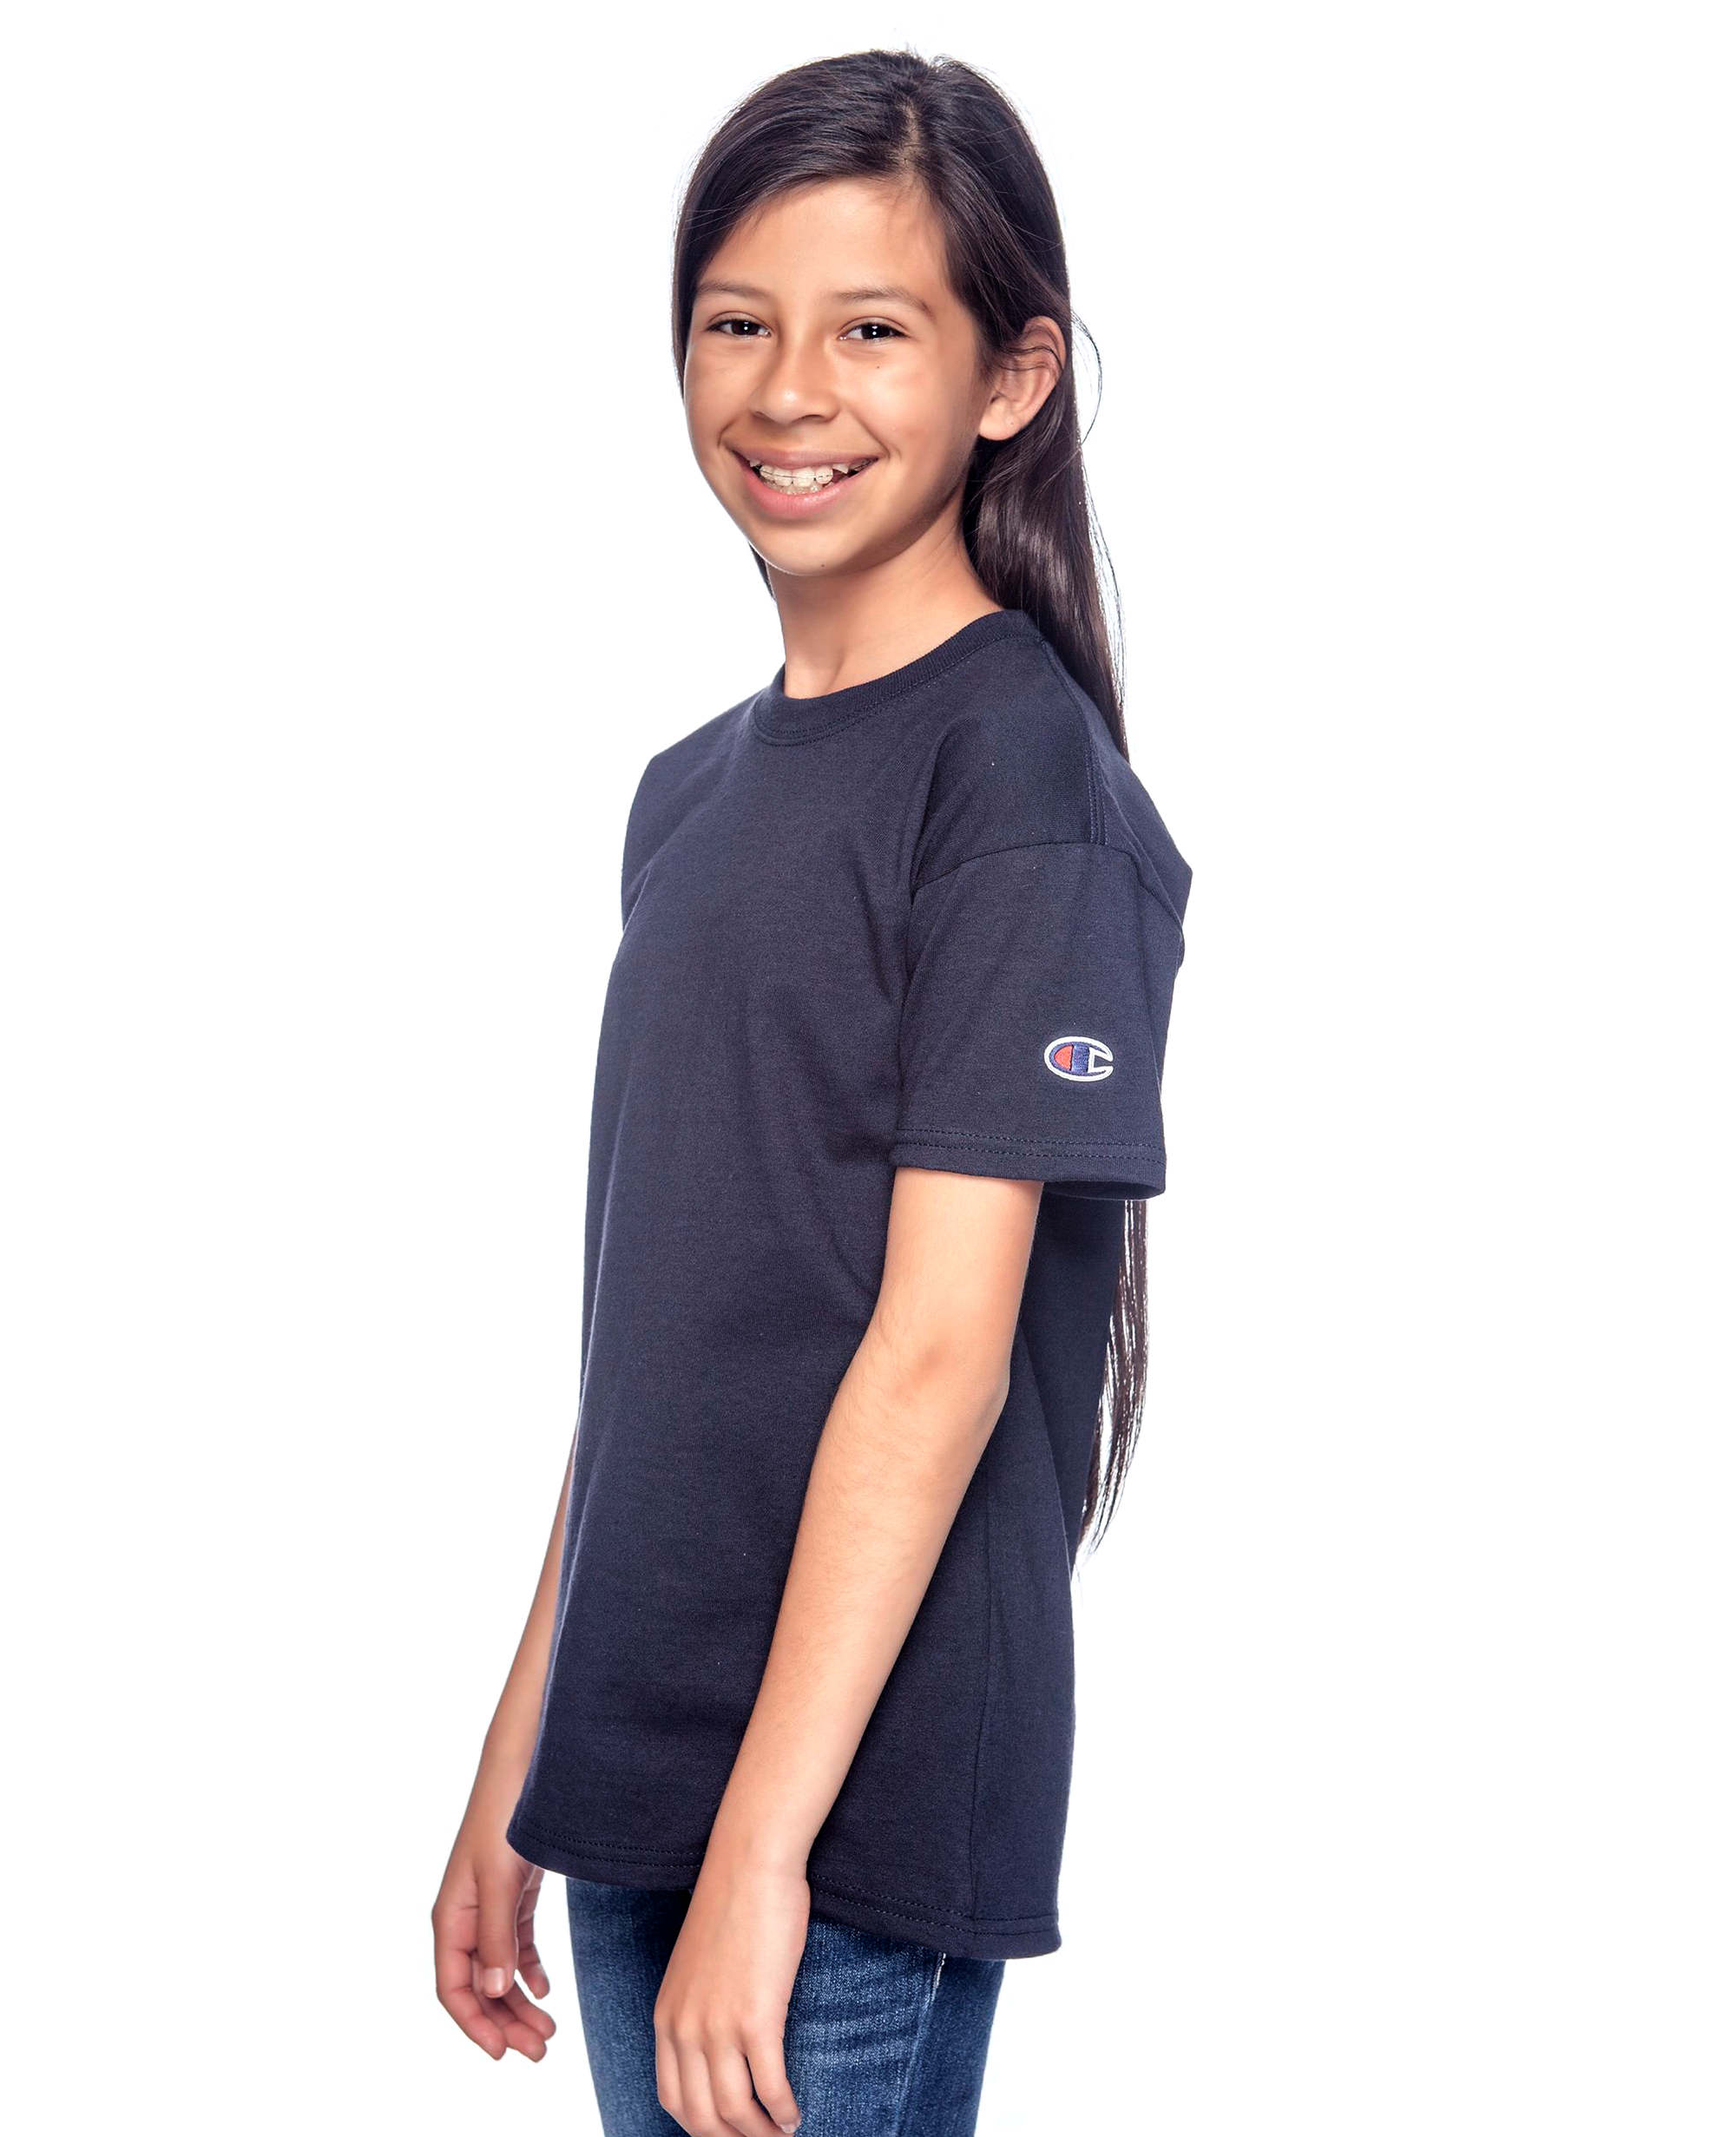 Sleeve Logo Youth's T-shirt  in Navy - T-Shirts - Champion - BRANMA